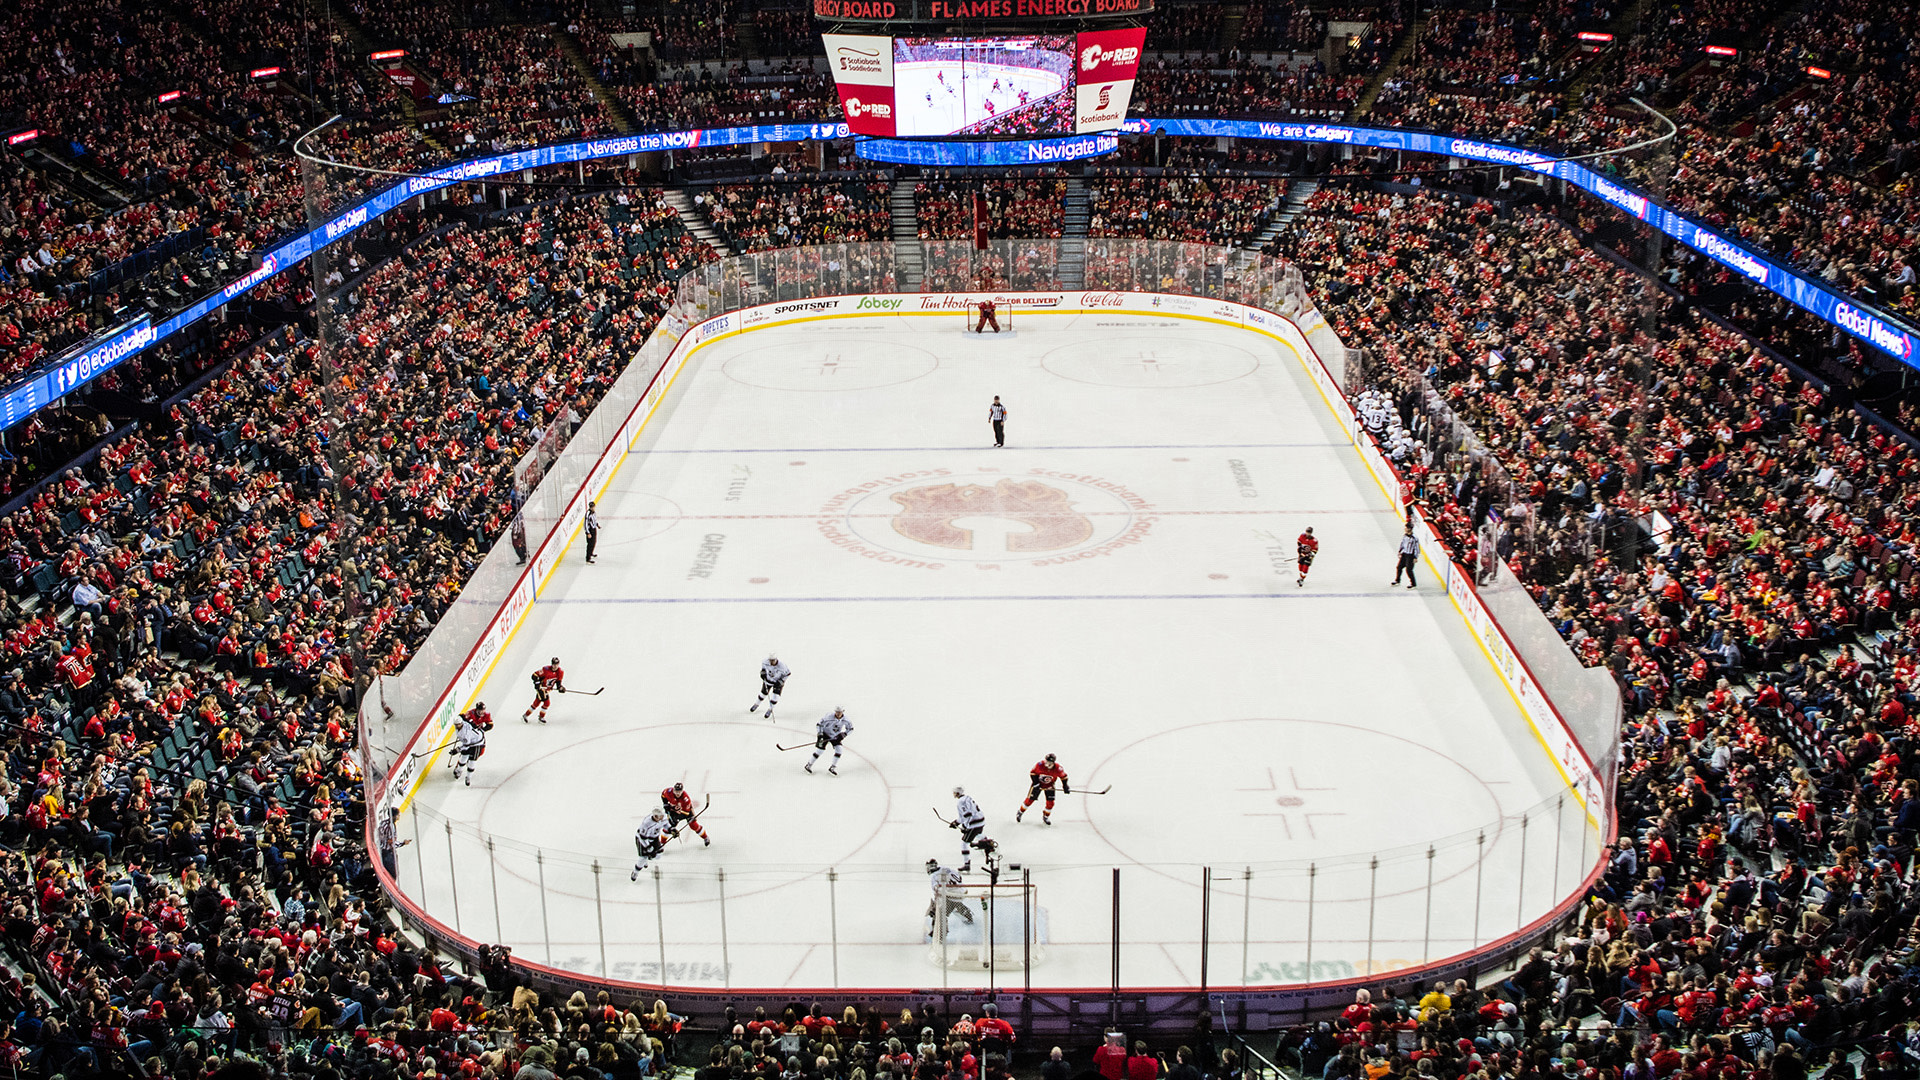 CALGARY FLAMES VS. MONTREAL CANADIENS